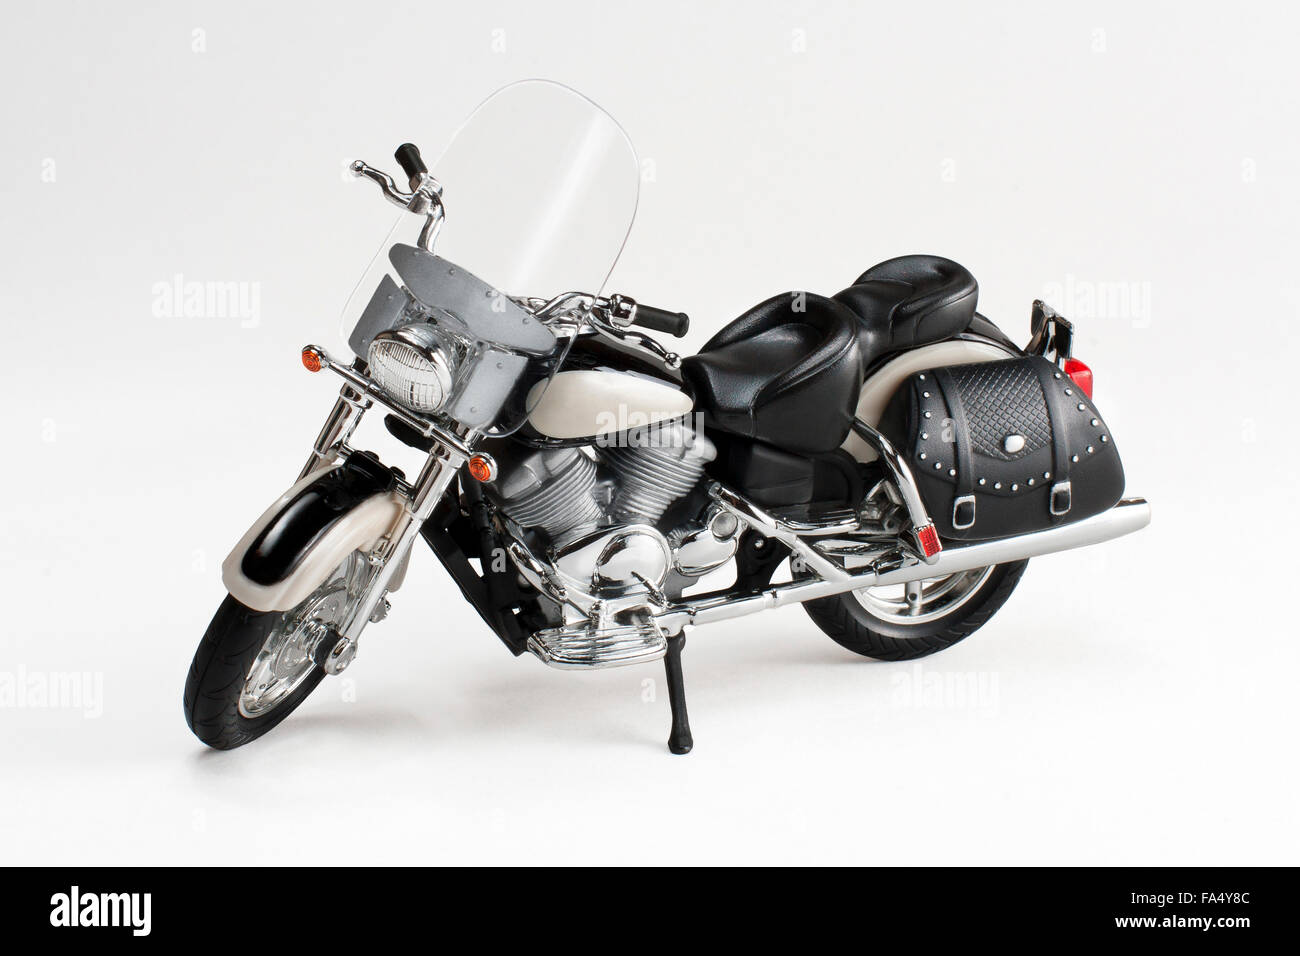 Toy Motorcycle Stock Photos & Toy Motorcycle Stock Images - Alamy